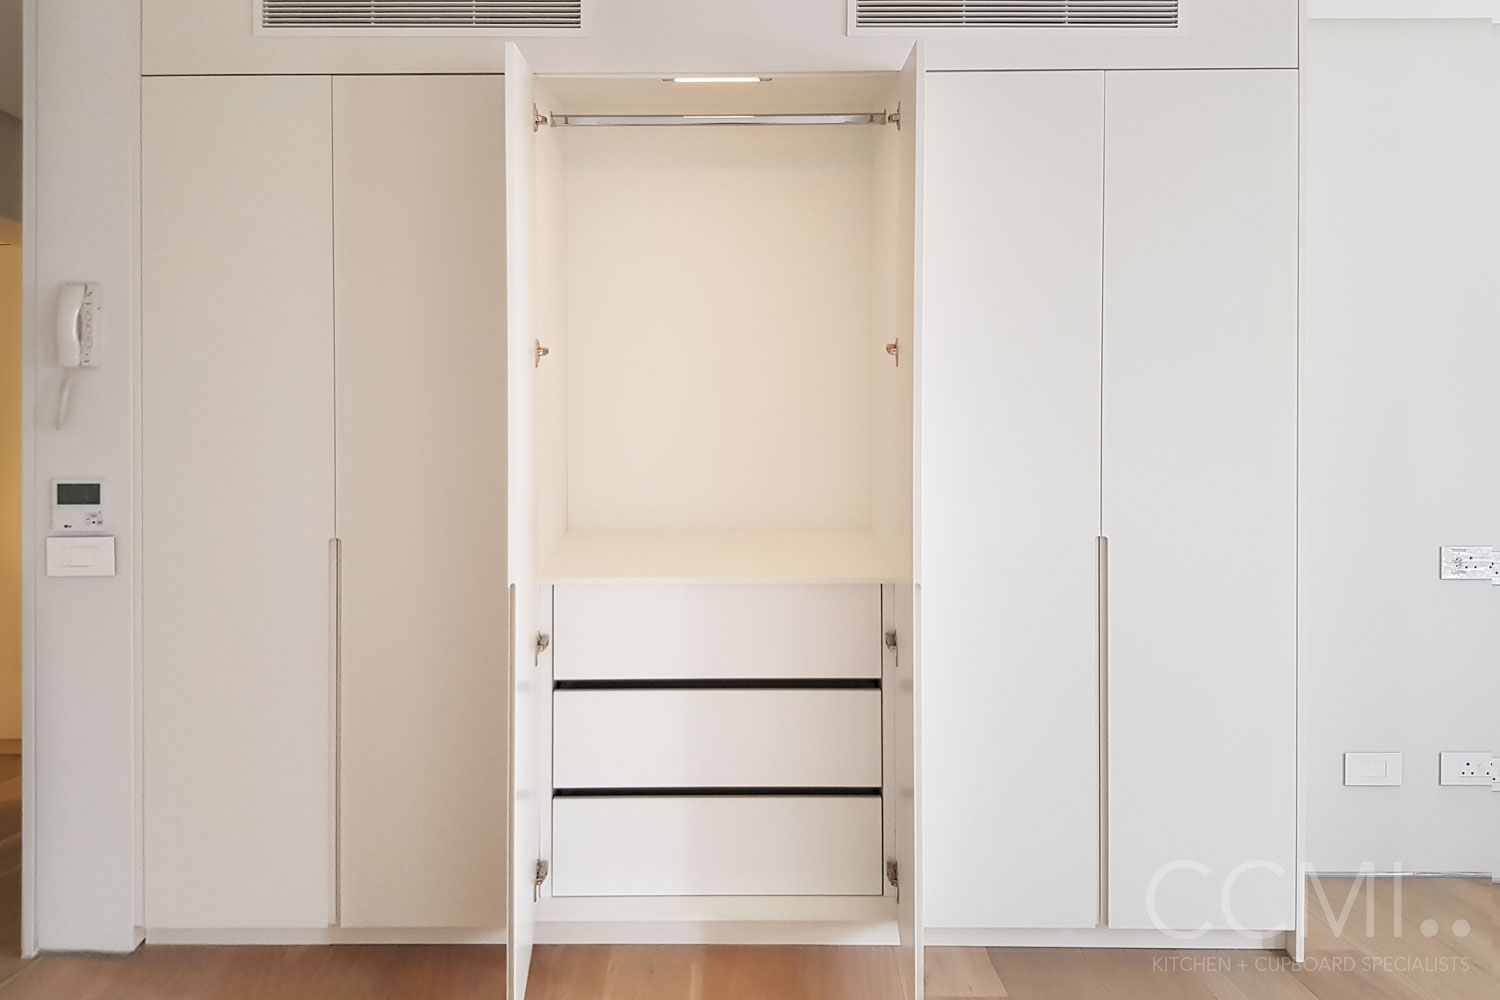 under counter built-in microwave situated in the island cabinetry